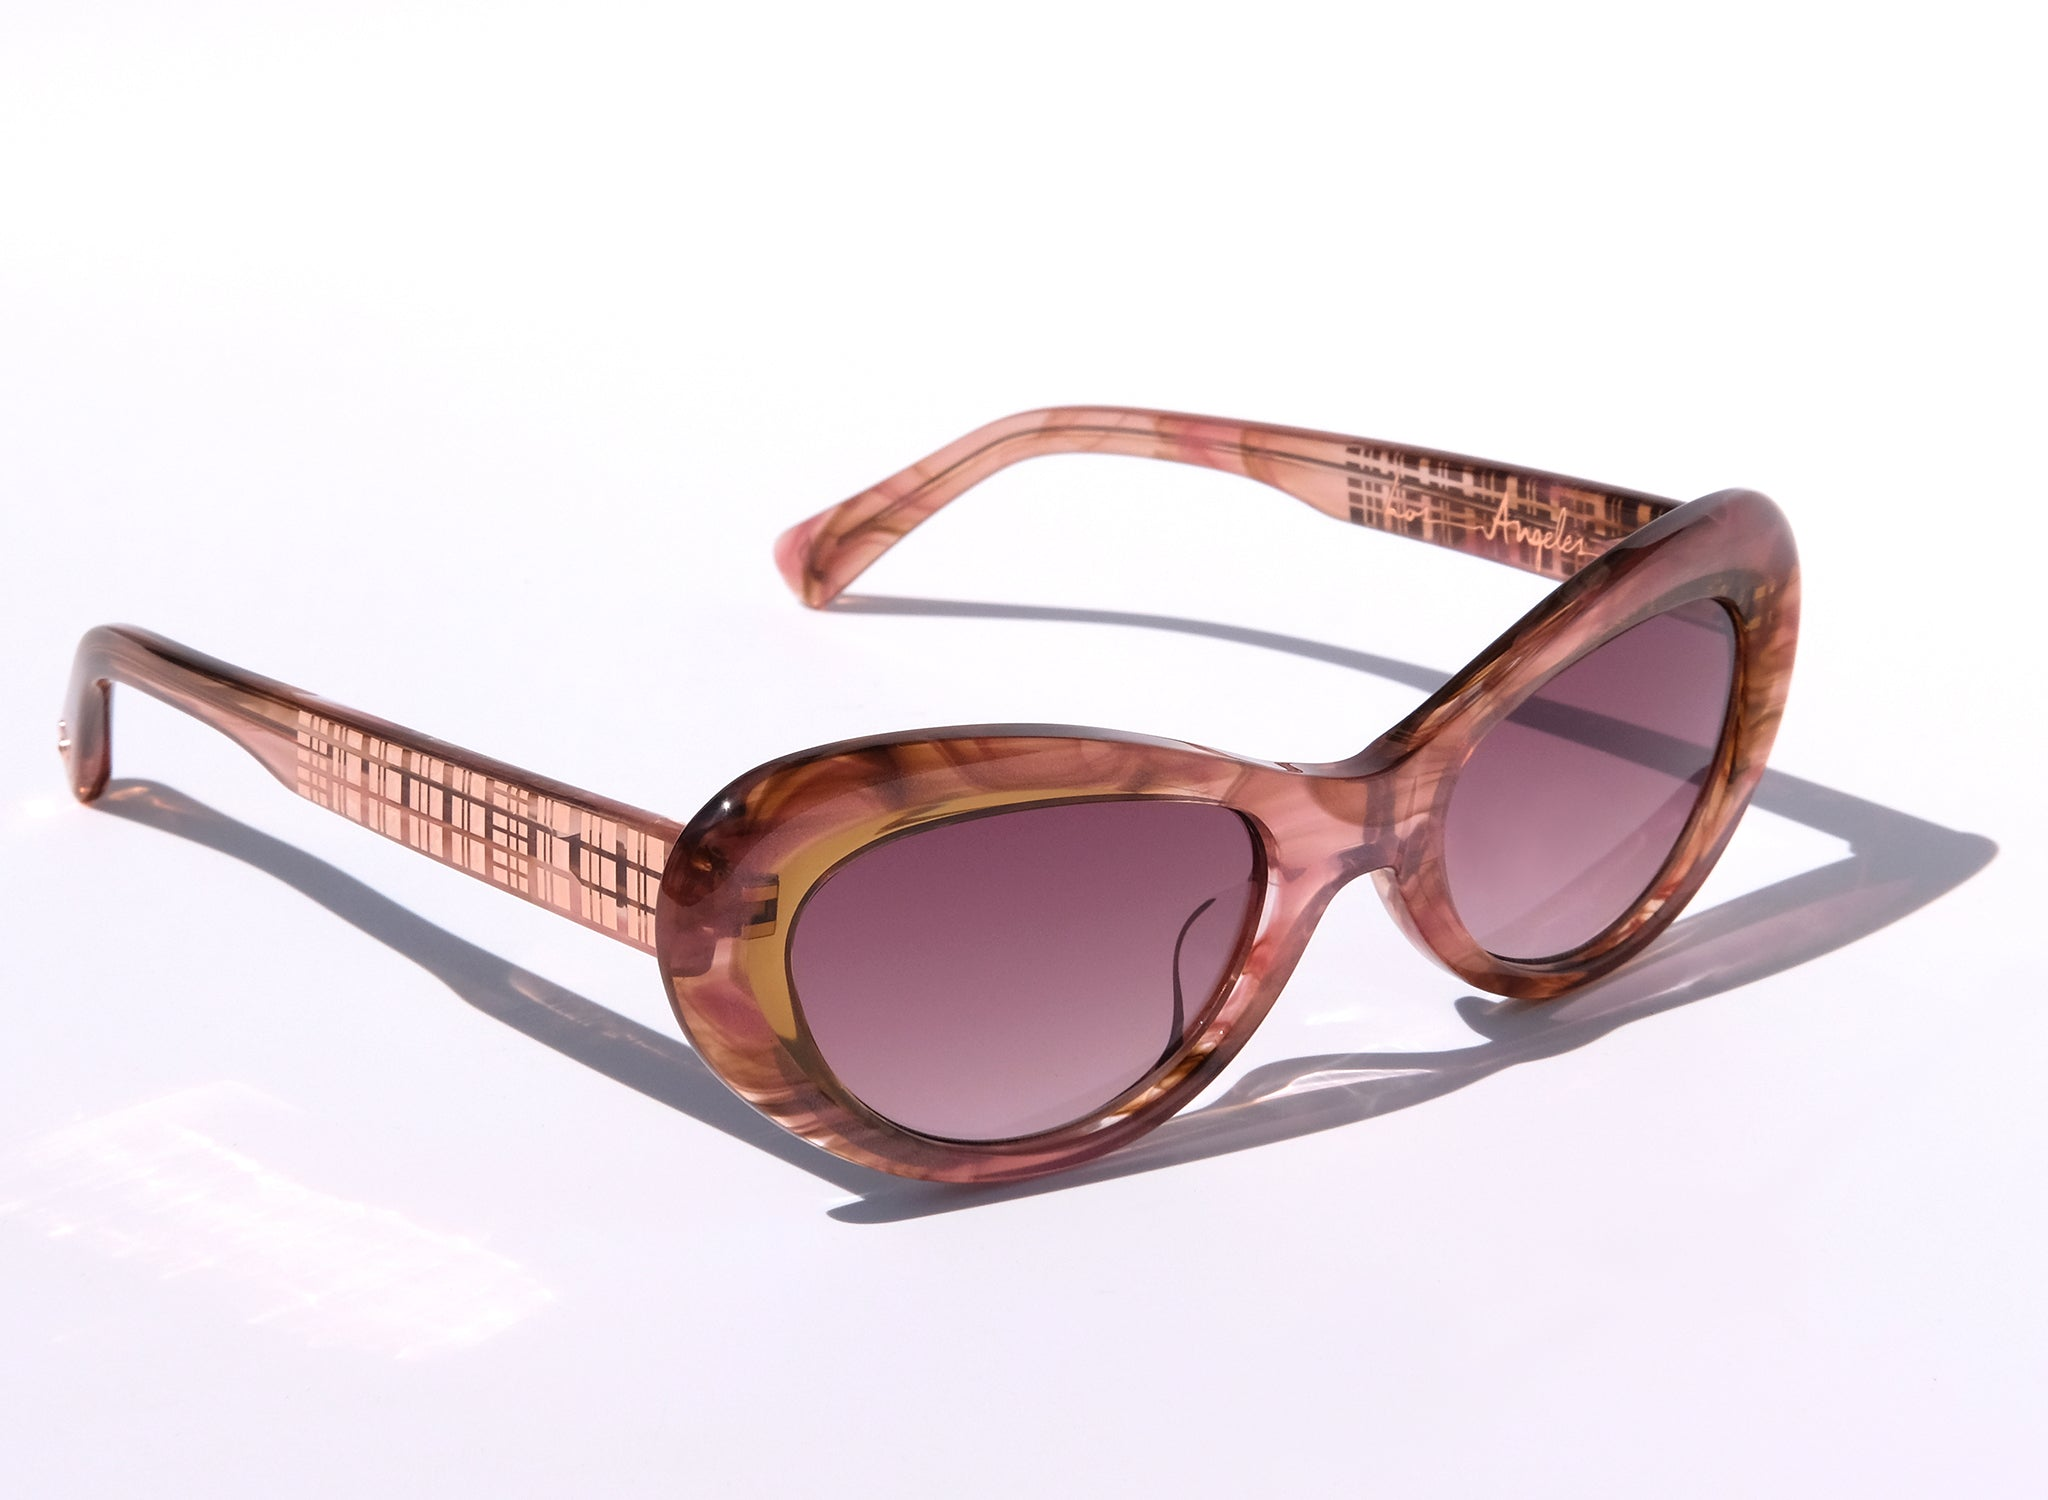 OCEANA IN HONEY SUNSET WITH METAL TEMPLE PATTERN, PINK CAT EYE SUNGLASSES